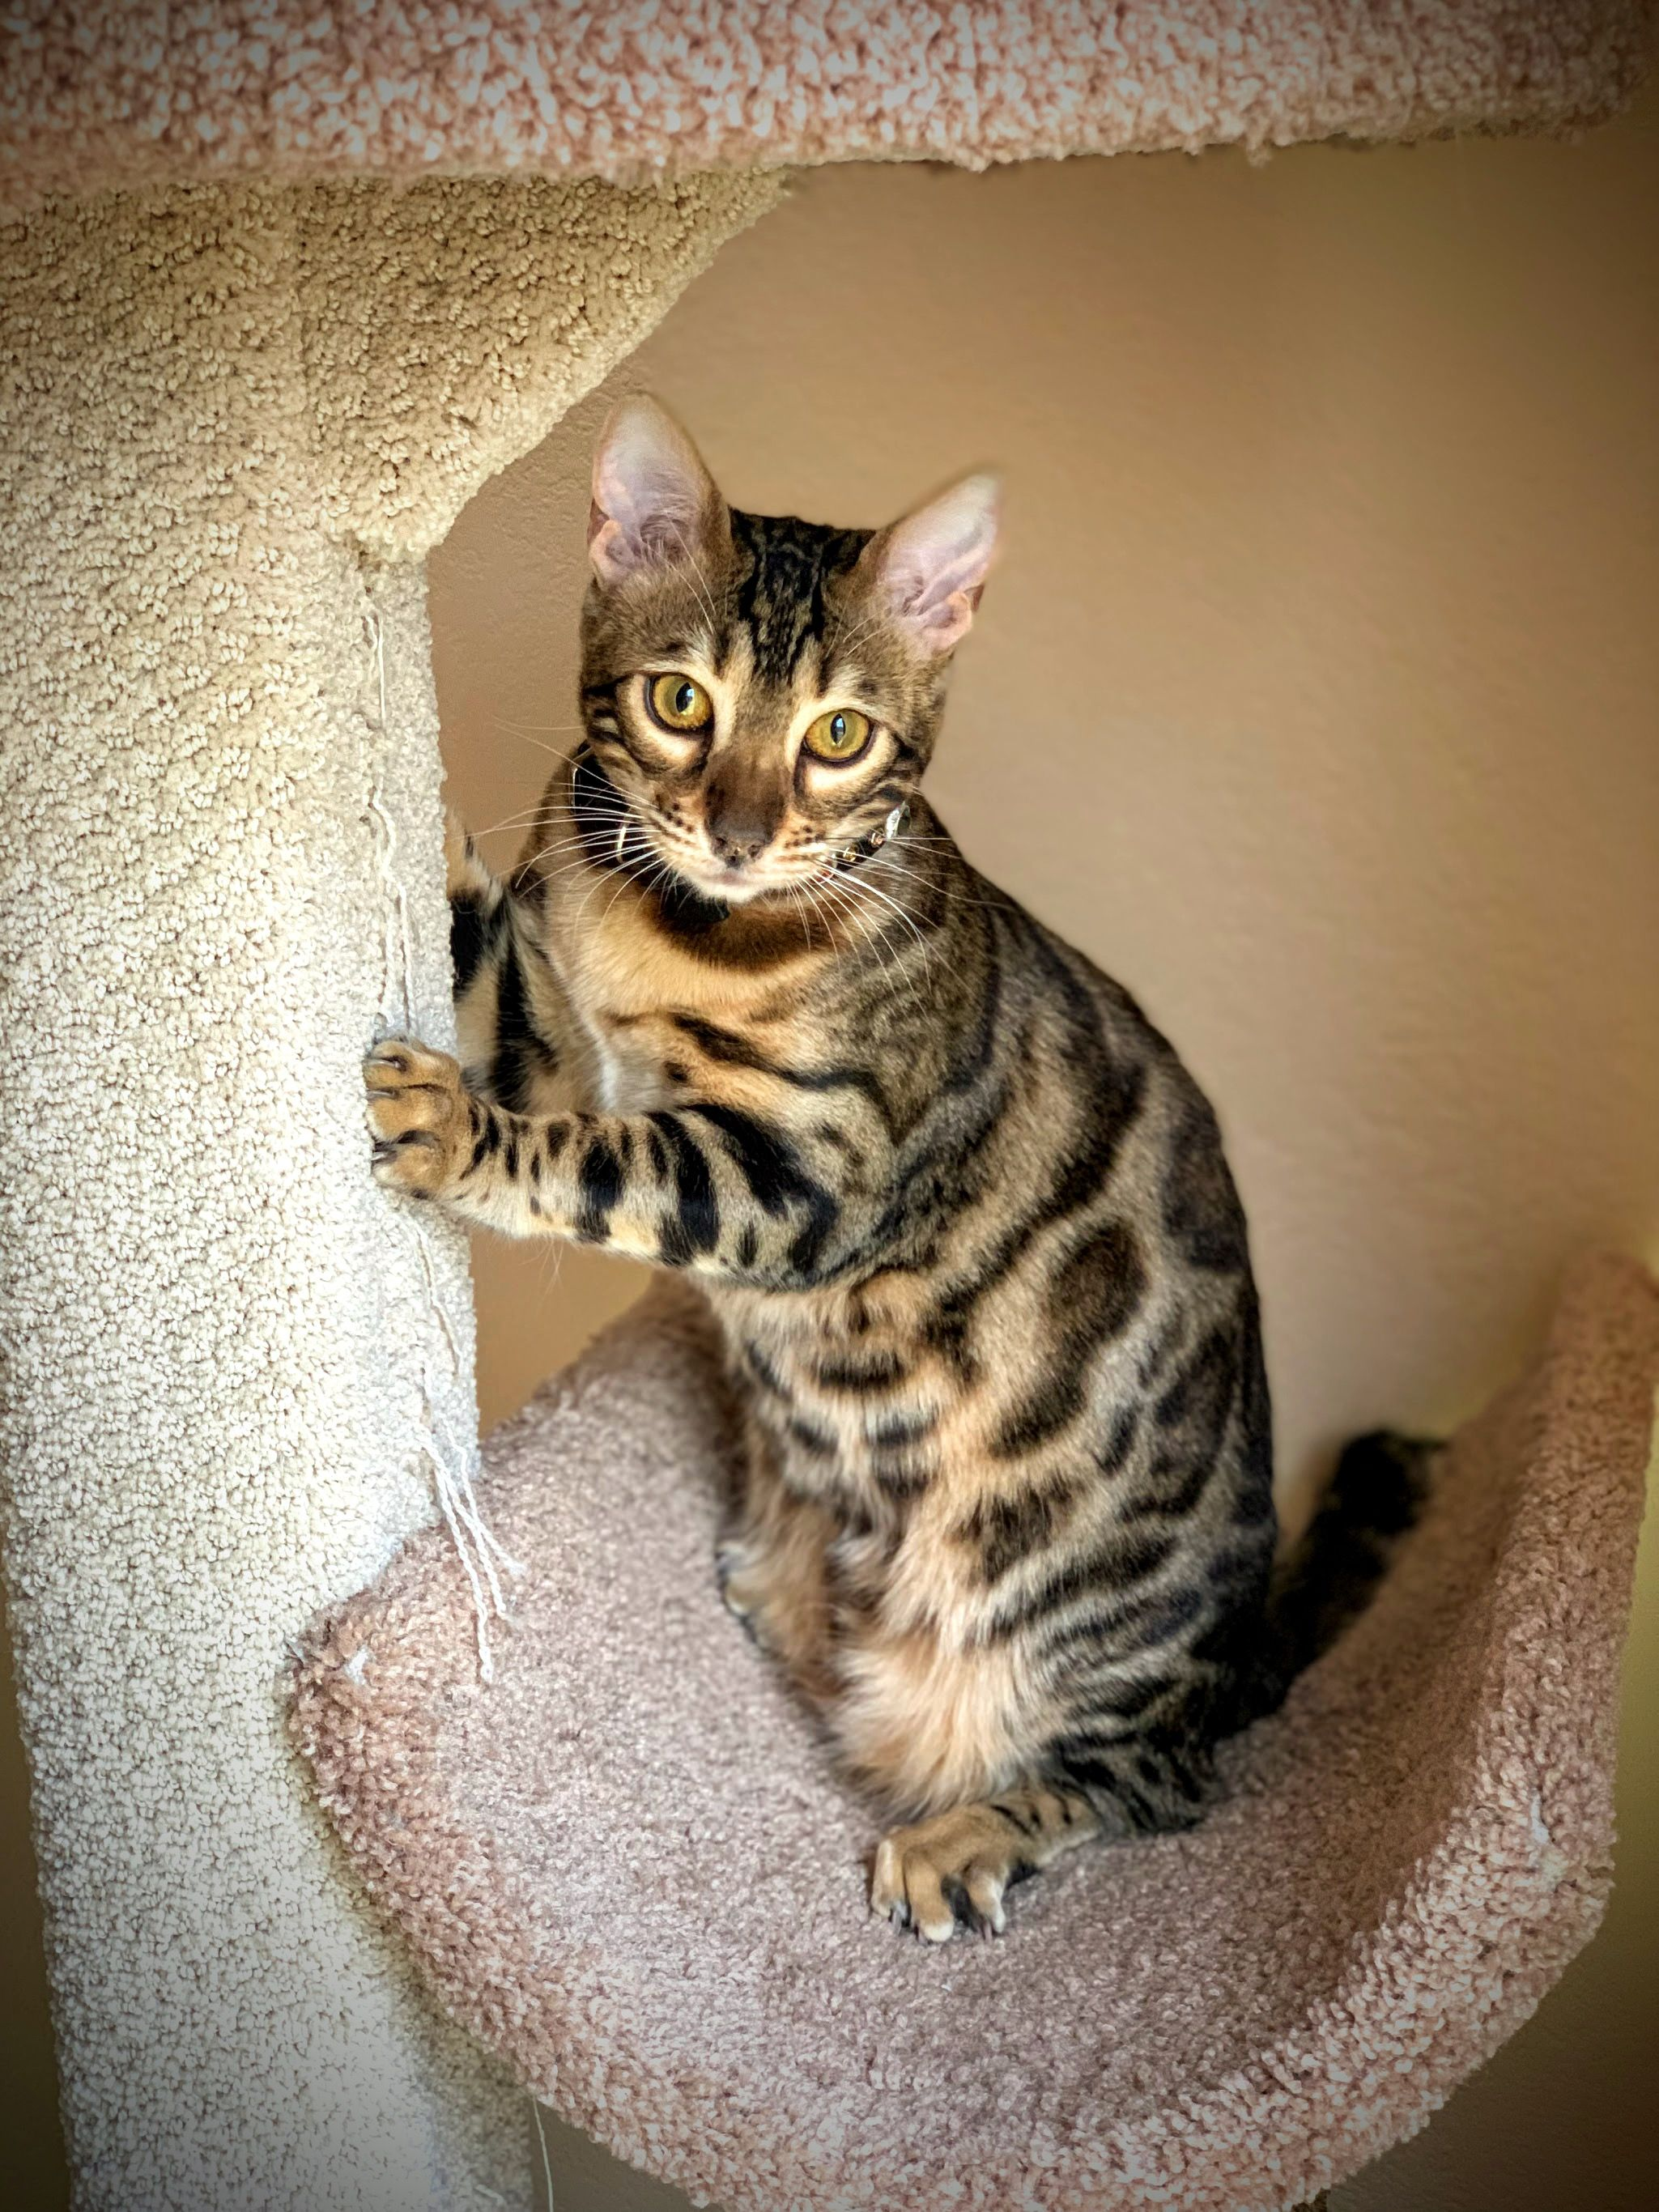 Bengal Kitten Tink Is 7 5 Months Cute Animals Images Fluffy Kittens Pretty Animals